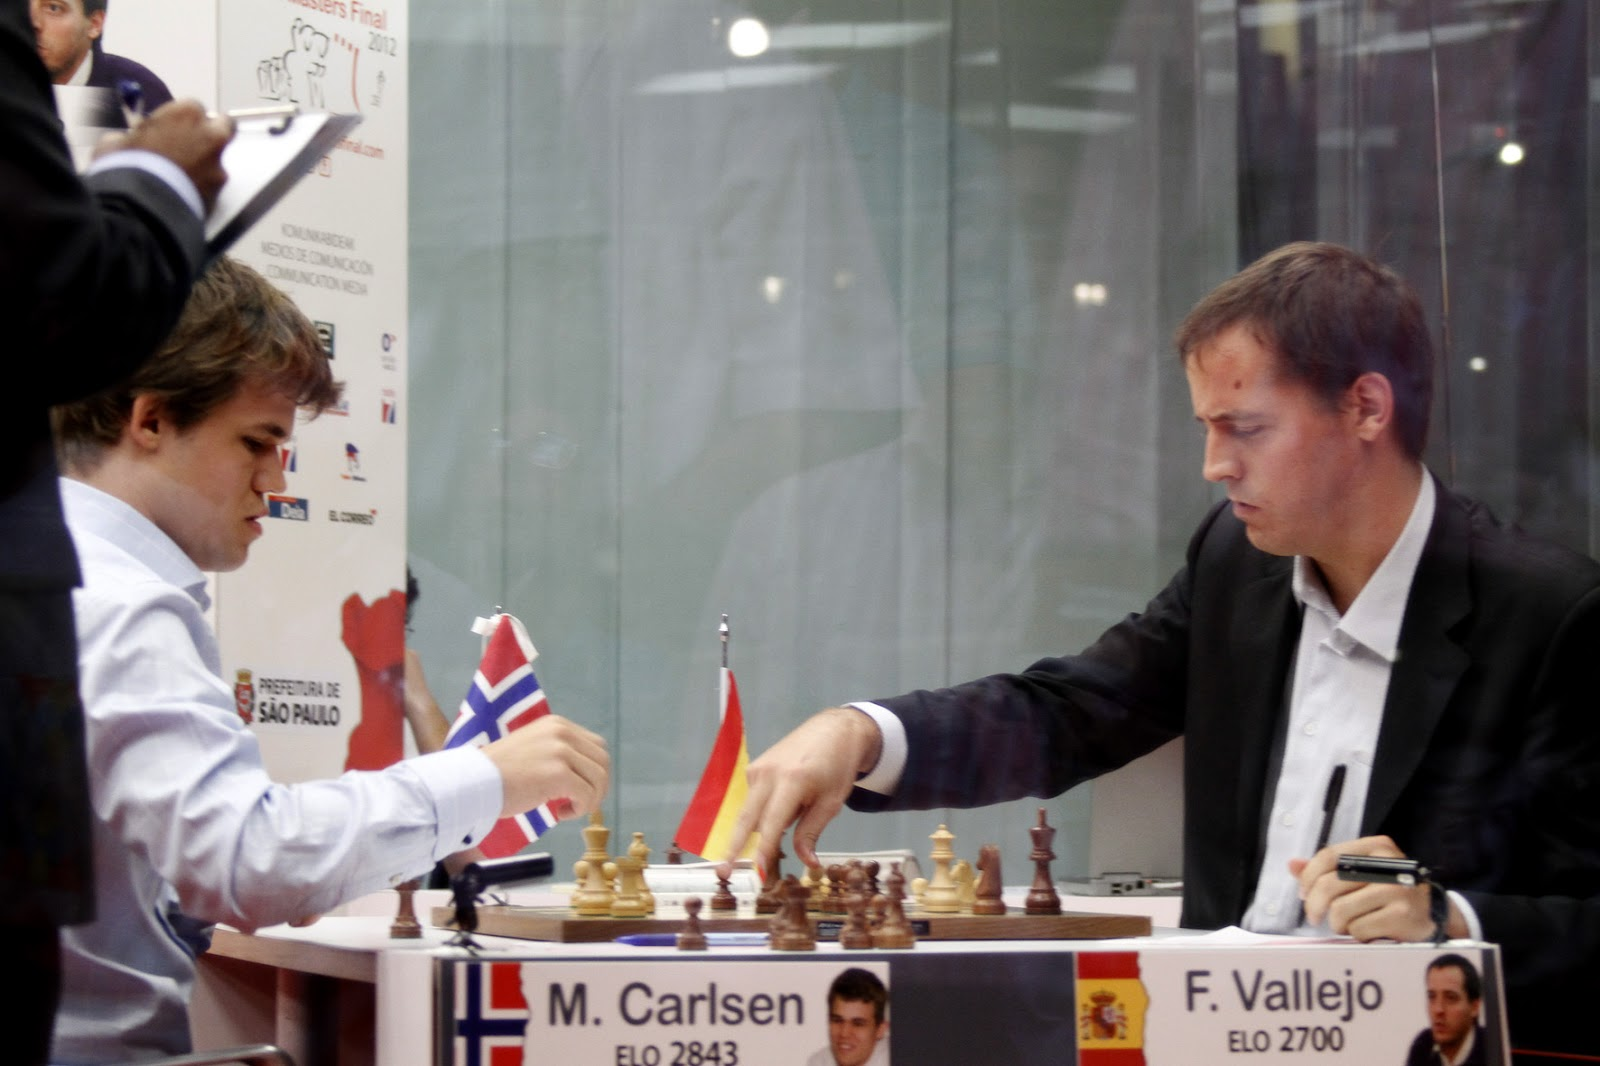 Anand Aronian chess masters bilbao 2012